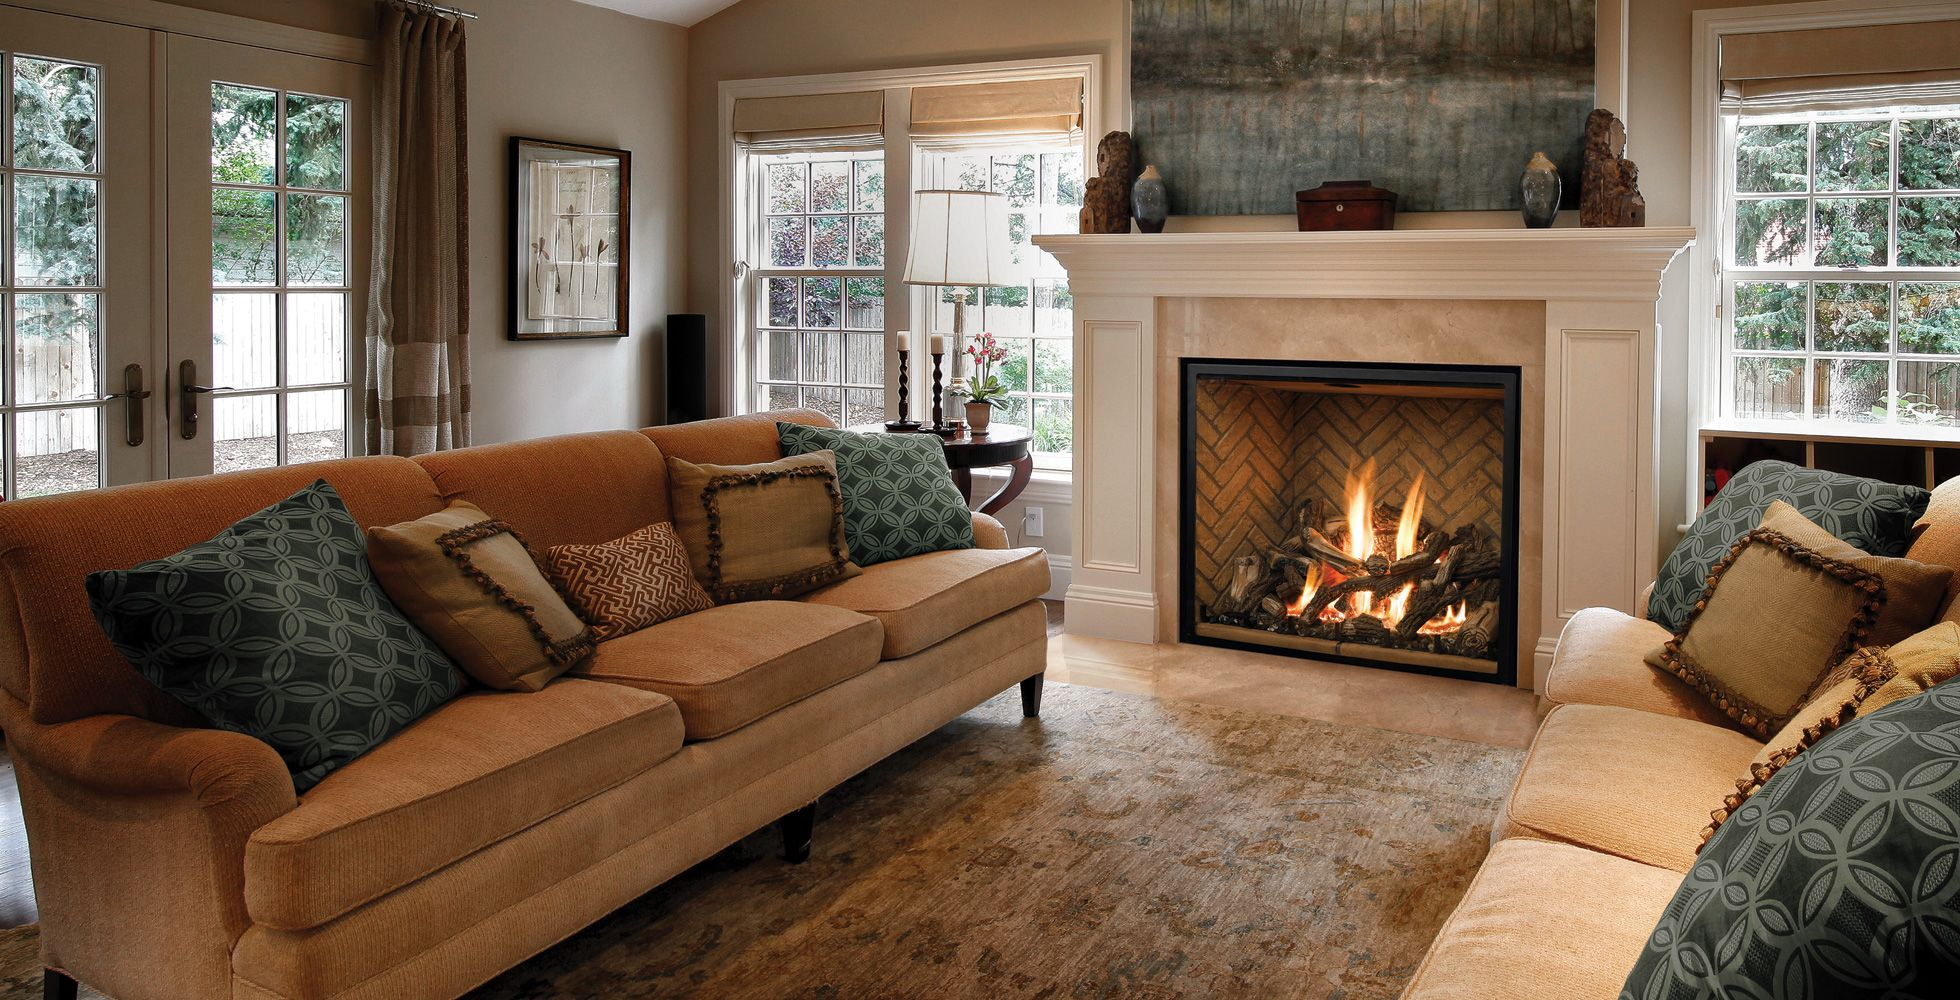 17+ Images About Fireplace On Pinterest | Mantel For Fireplace